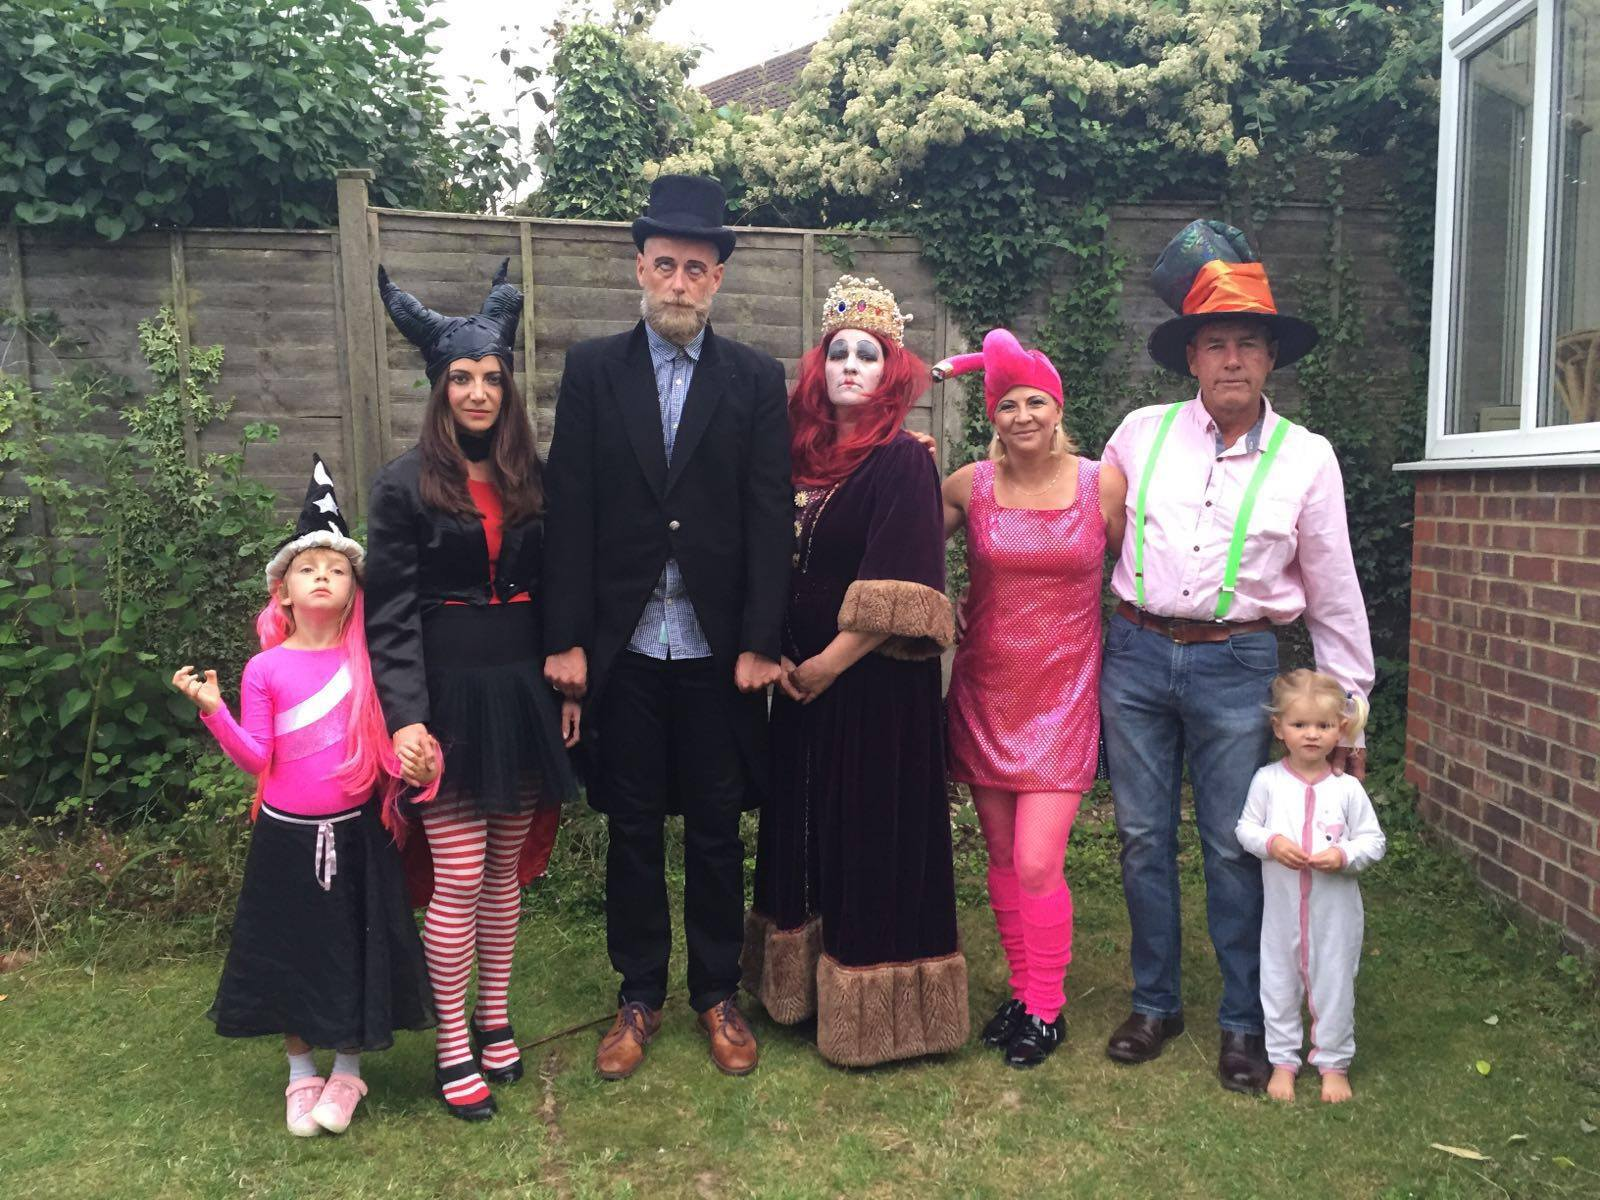 Mad Hatter family